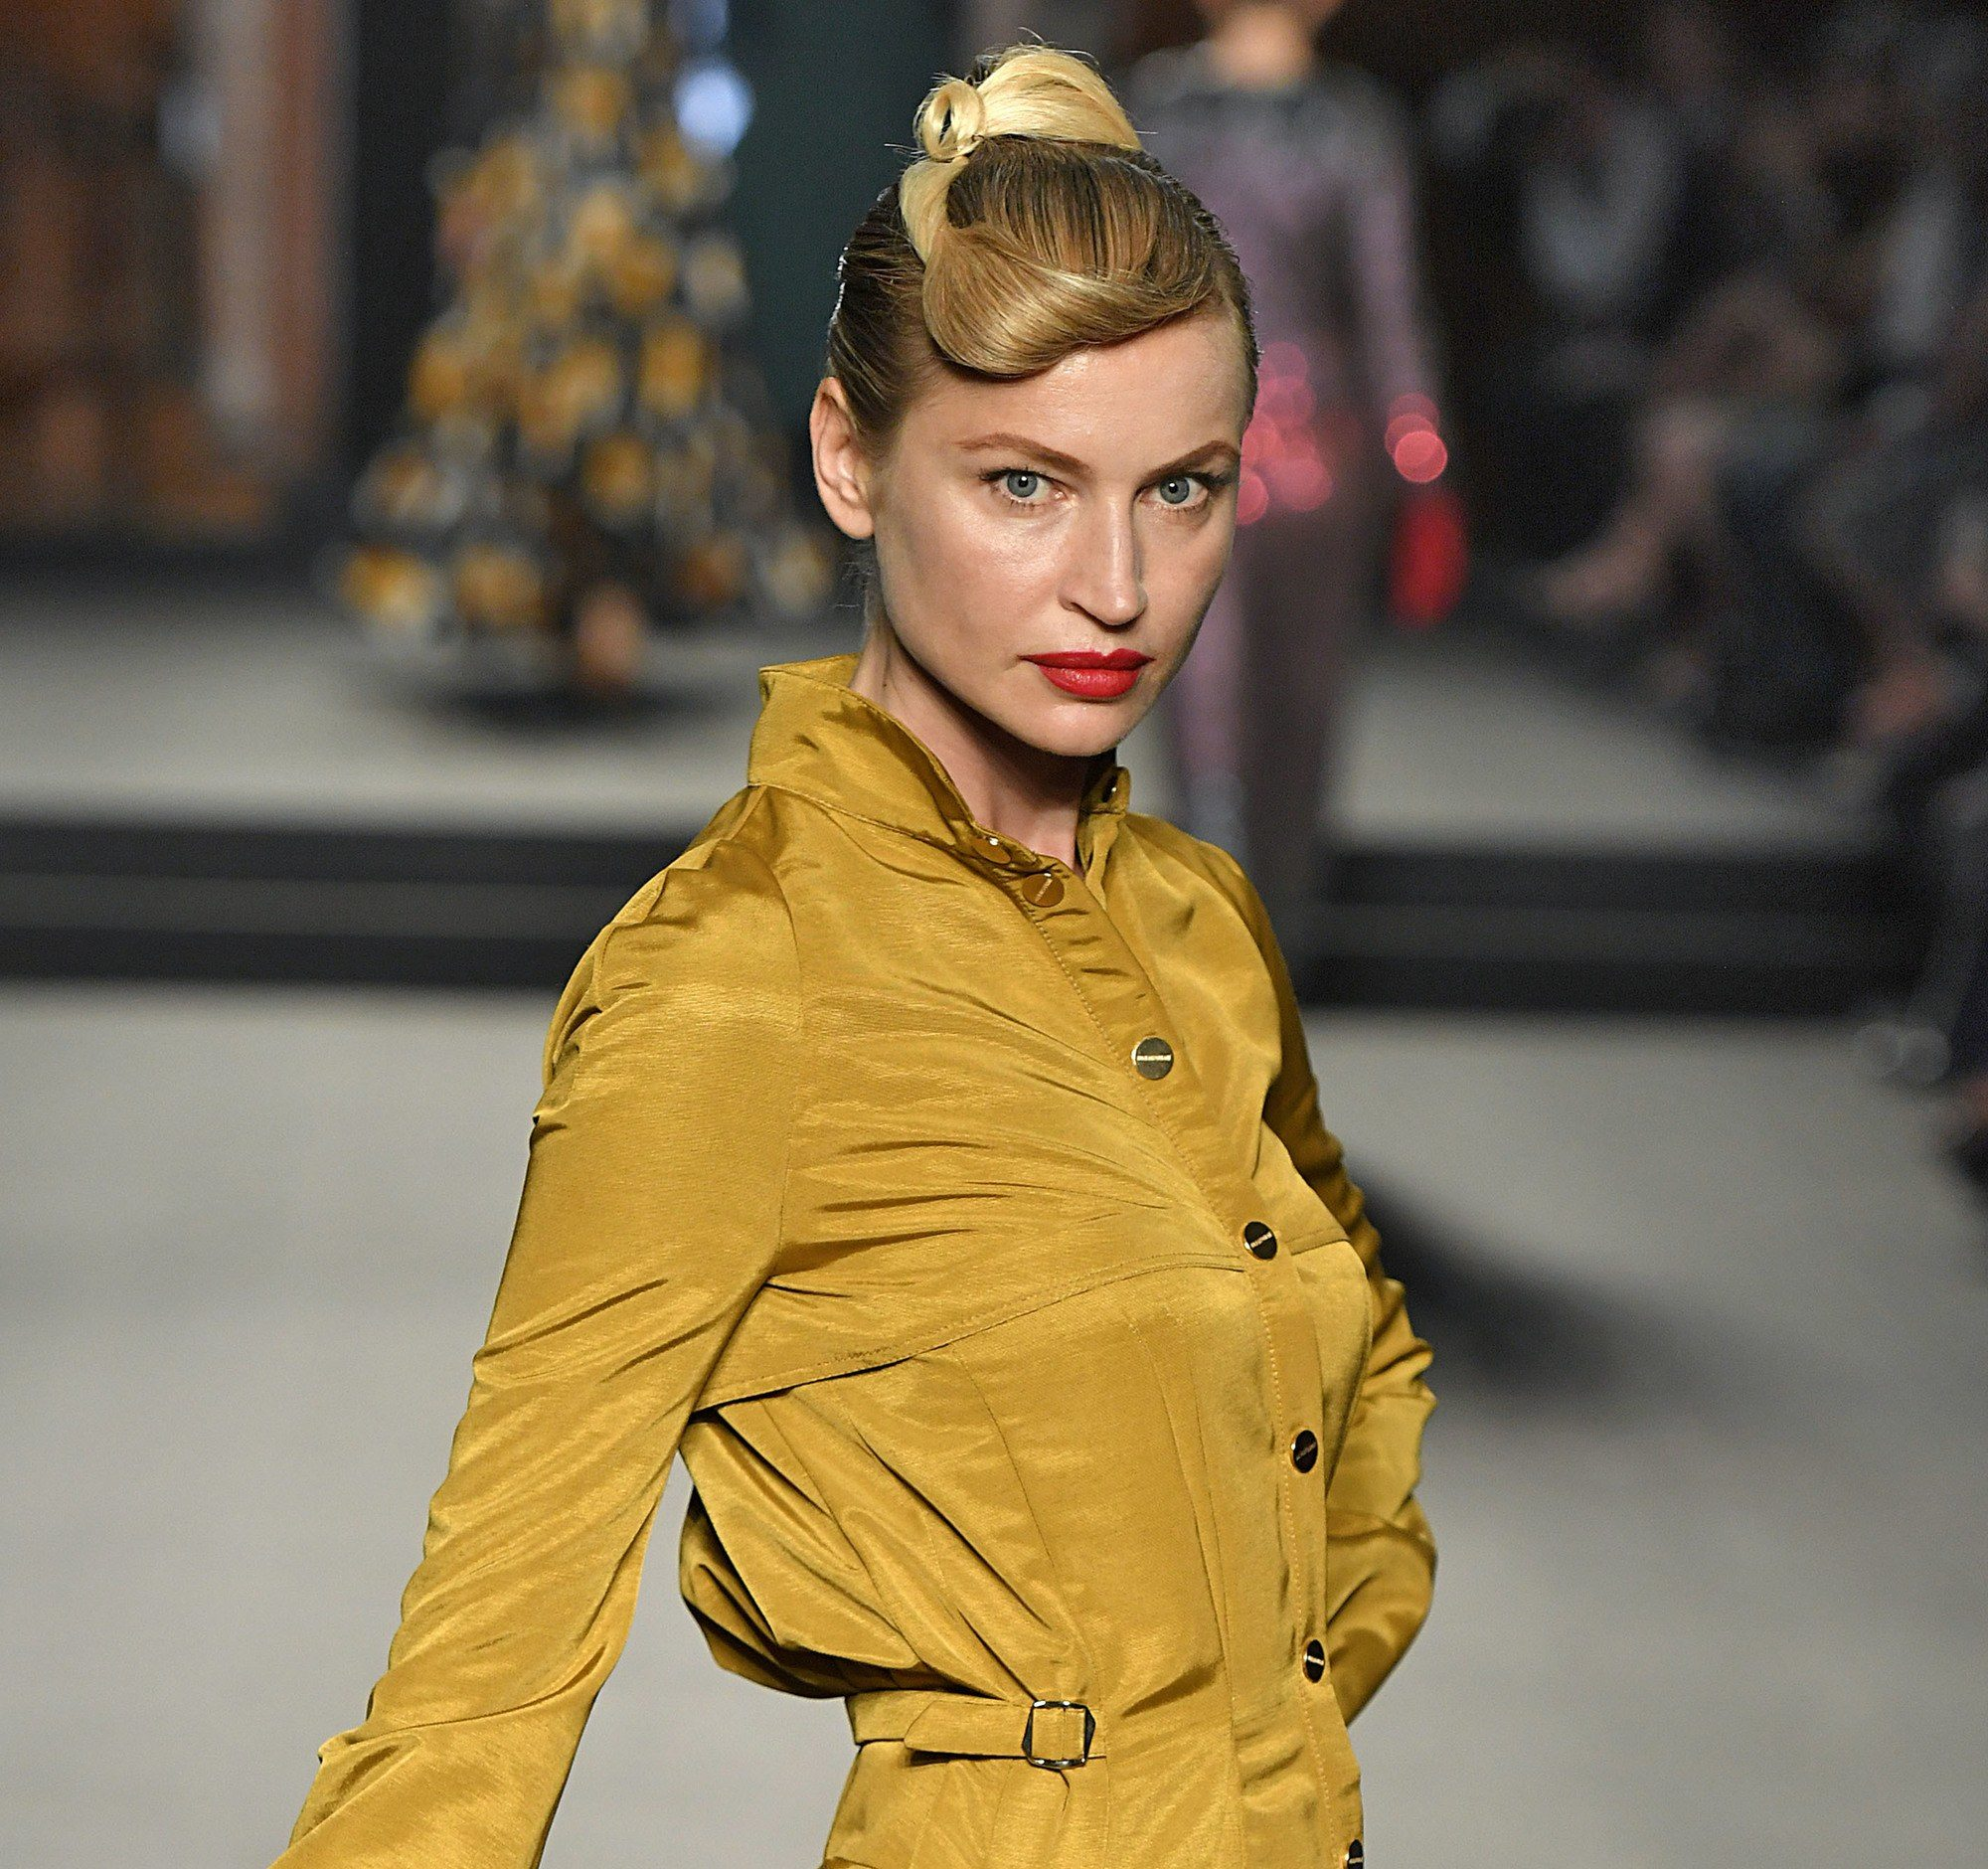 Paris Haute Couture Week fw18: close up shot of a woman on the runway with golden blonde hair styled into a retro twist updo, wearing mustard dress and posing